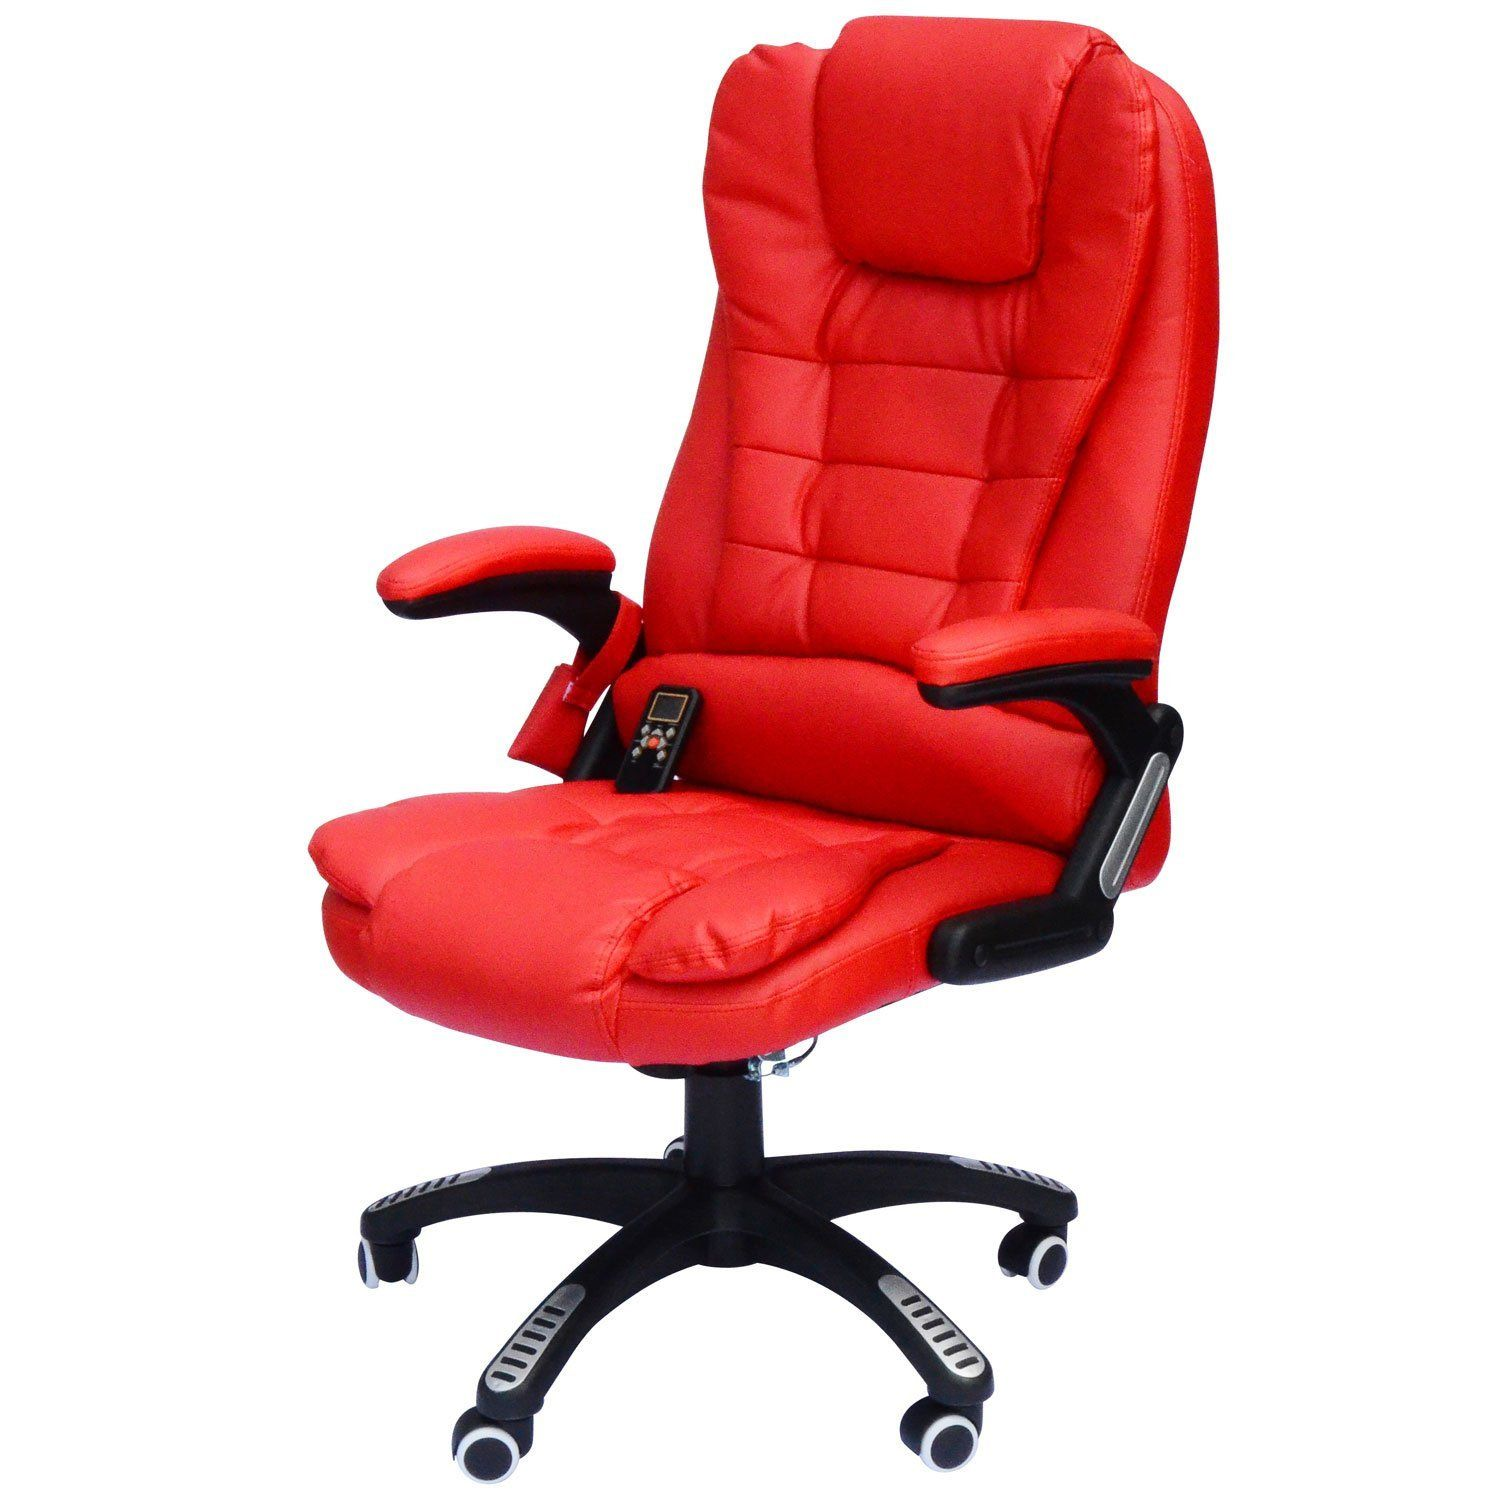 Red office chair large home office furniture check more at http www